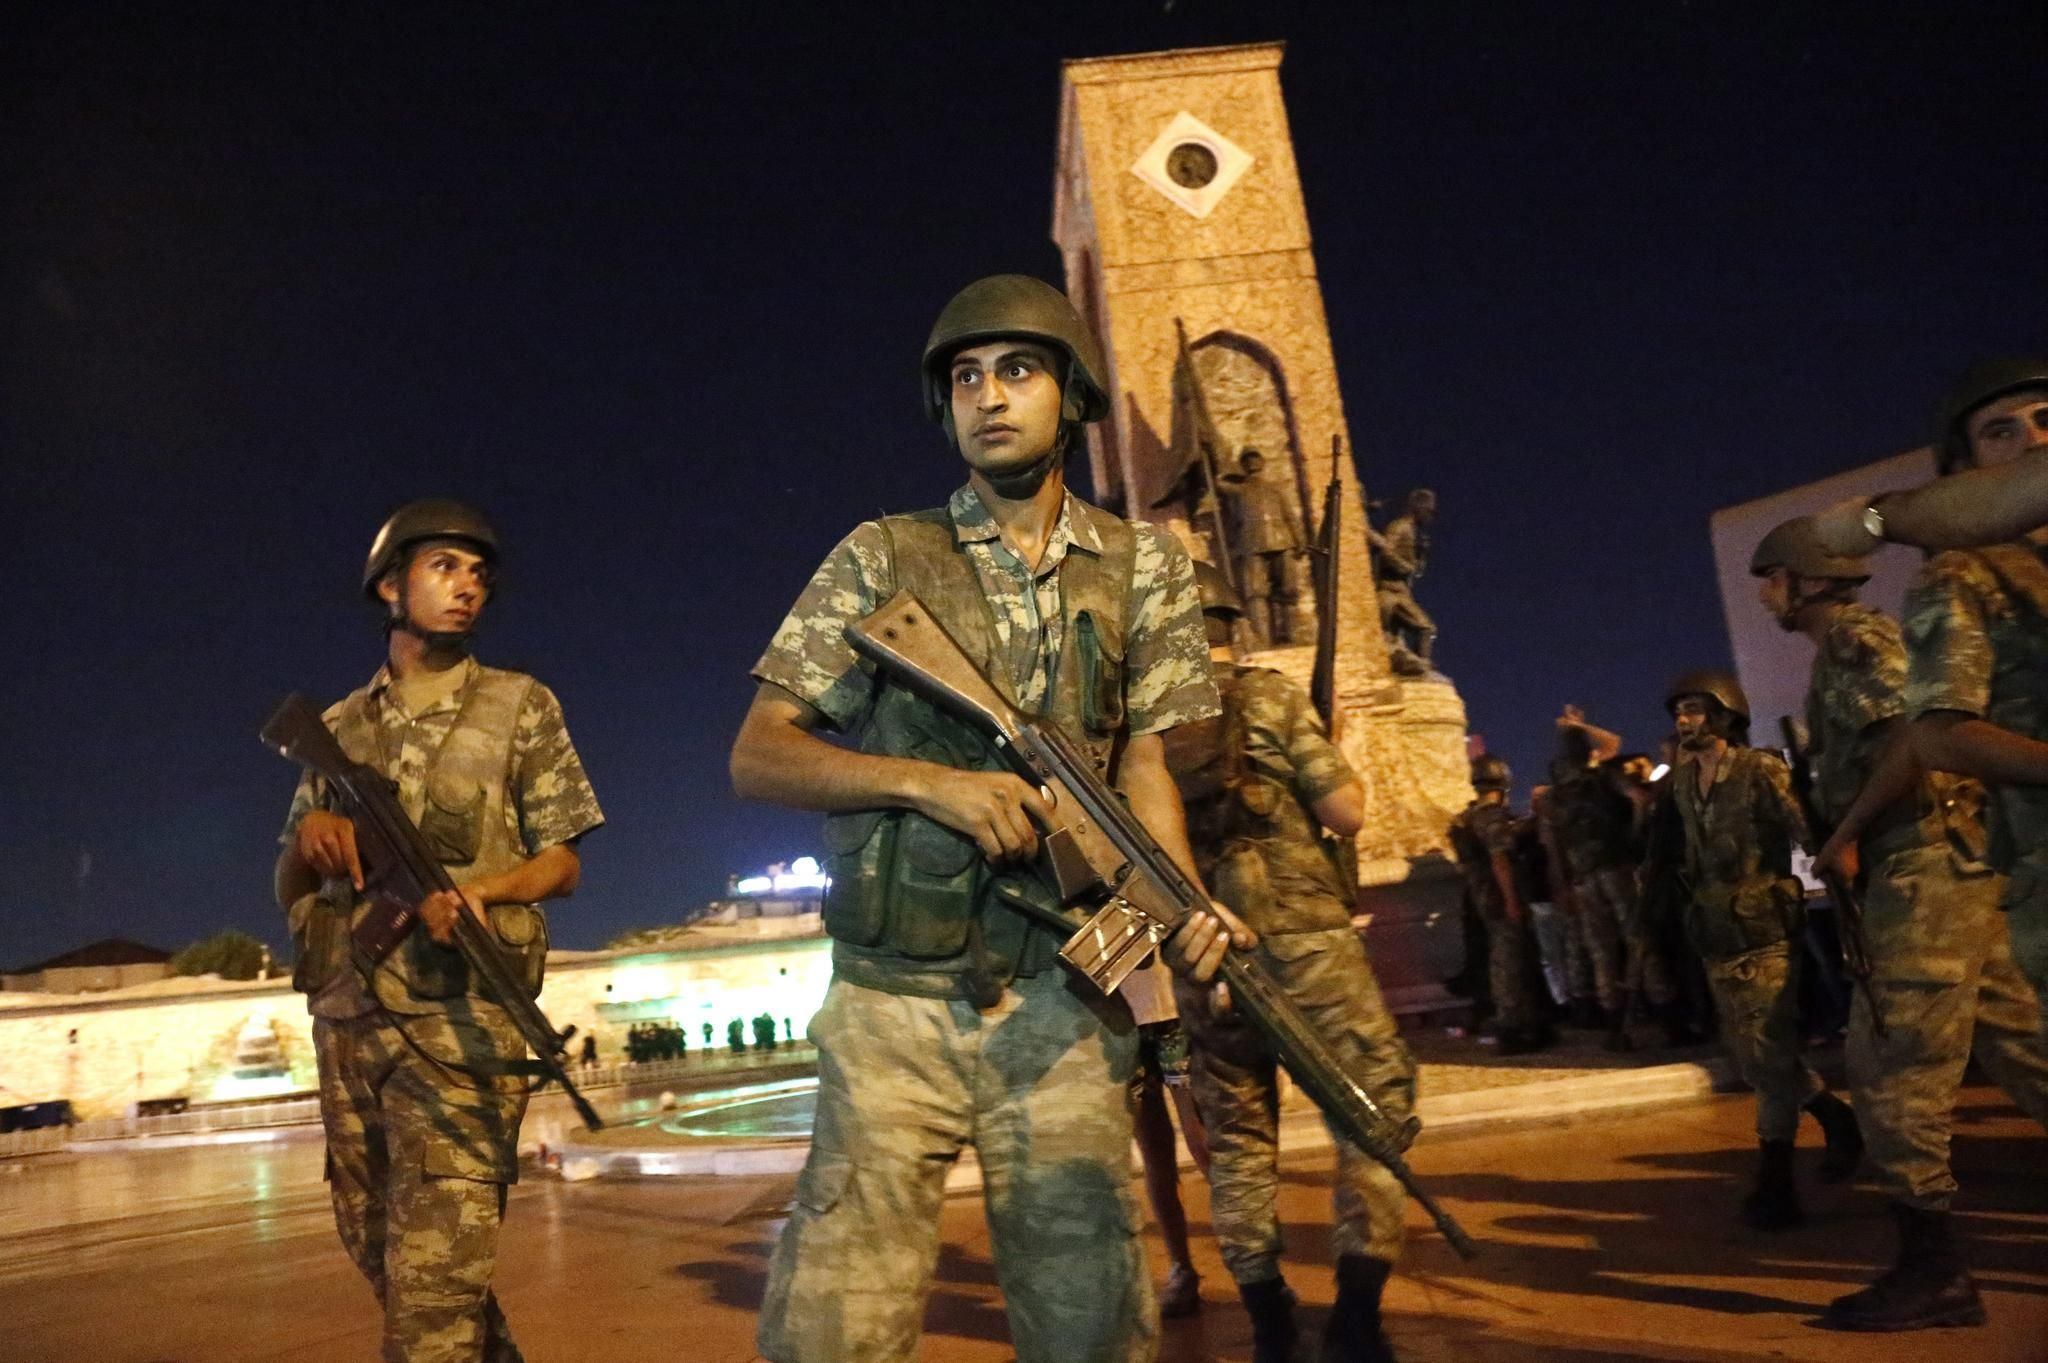 39093404 - 16_07_2016 - TURKEY COUP ATTEMPT